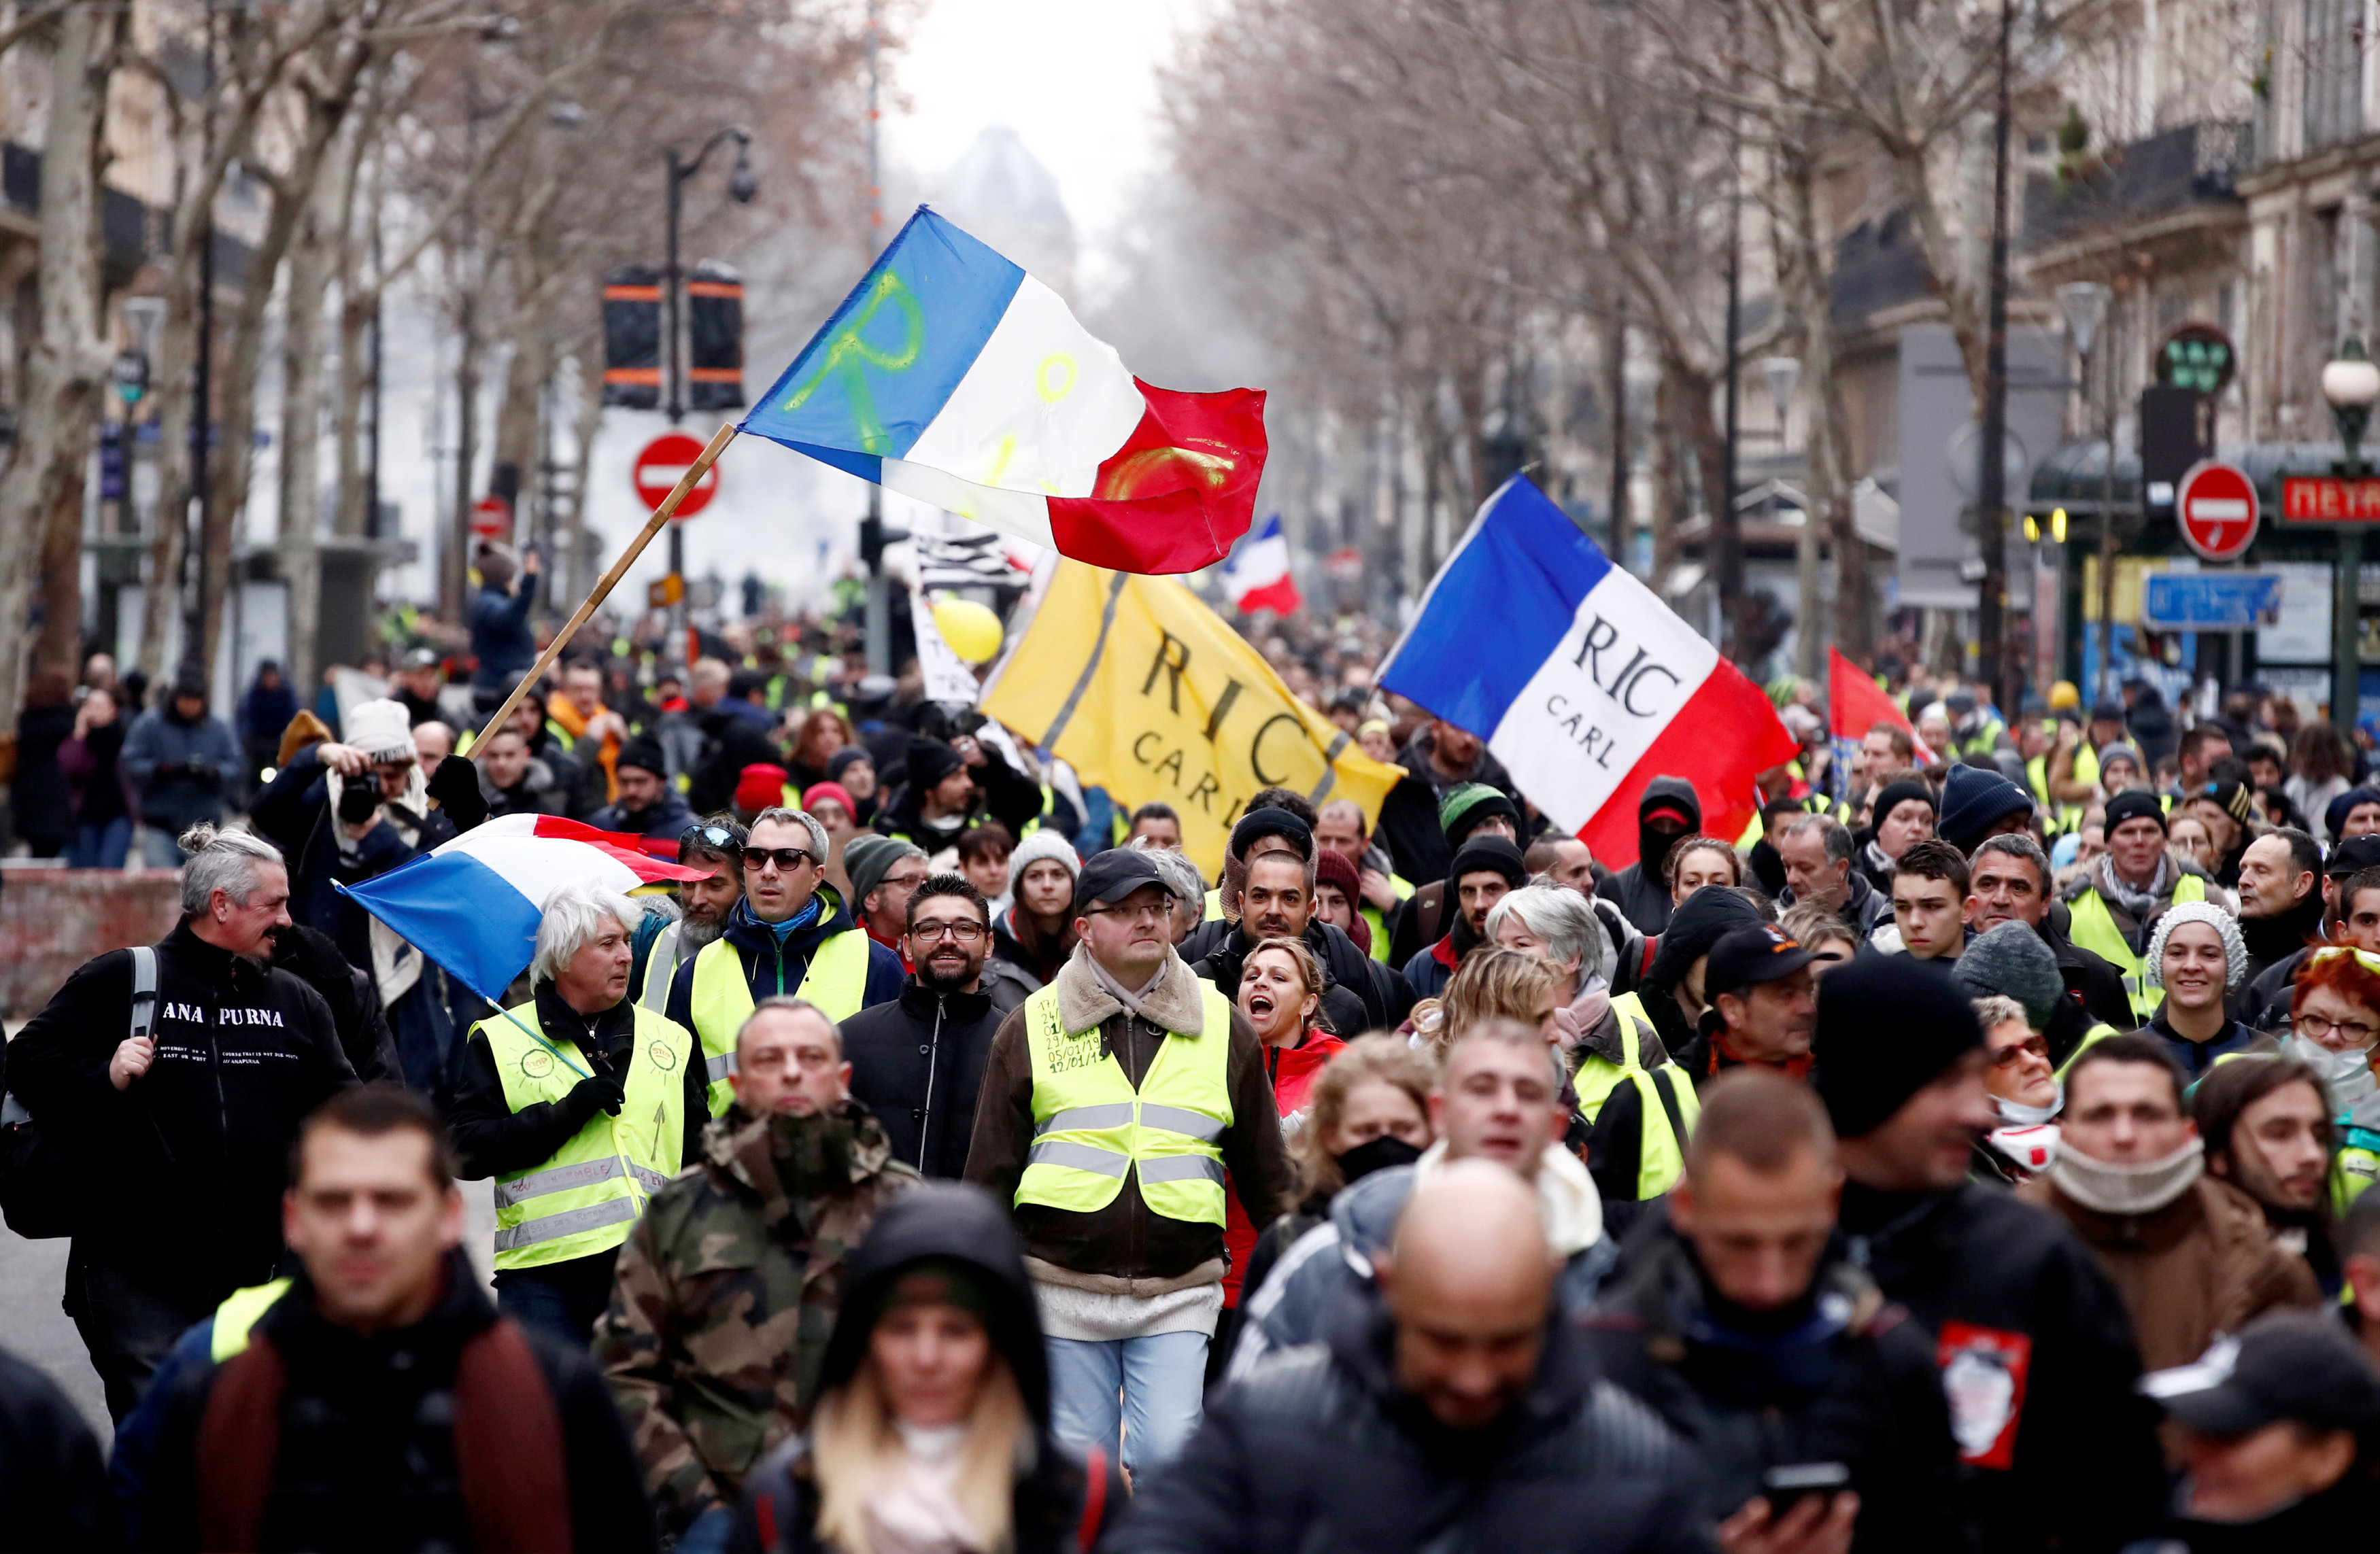 2019-01-12T120550Z_1325389709_RC11D7AEBC50_RTRMADP_3_FRANCE-PROTESTS